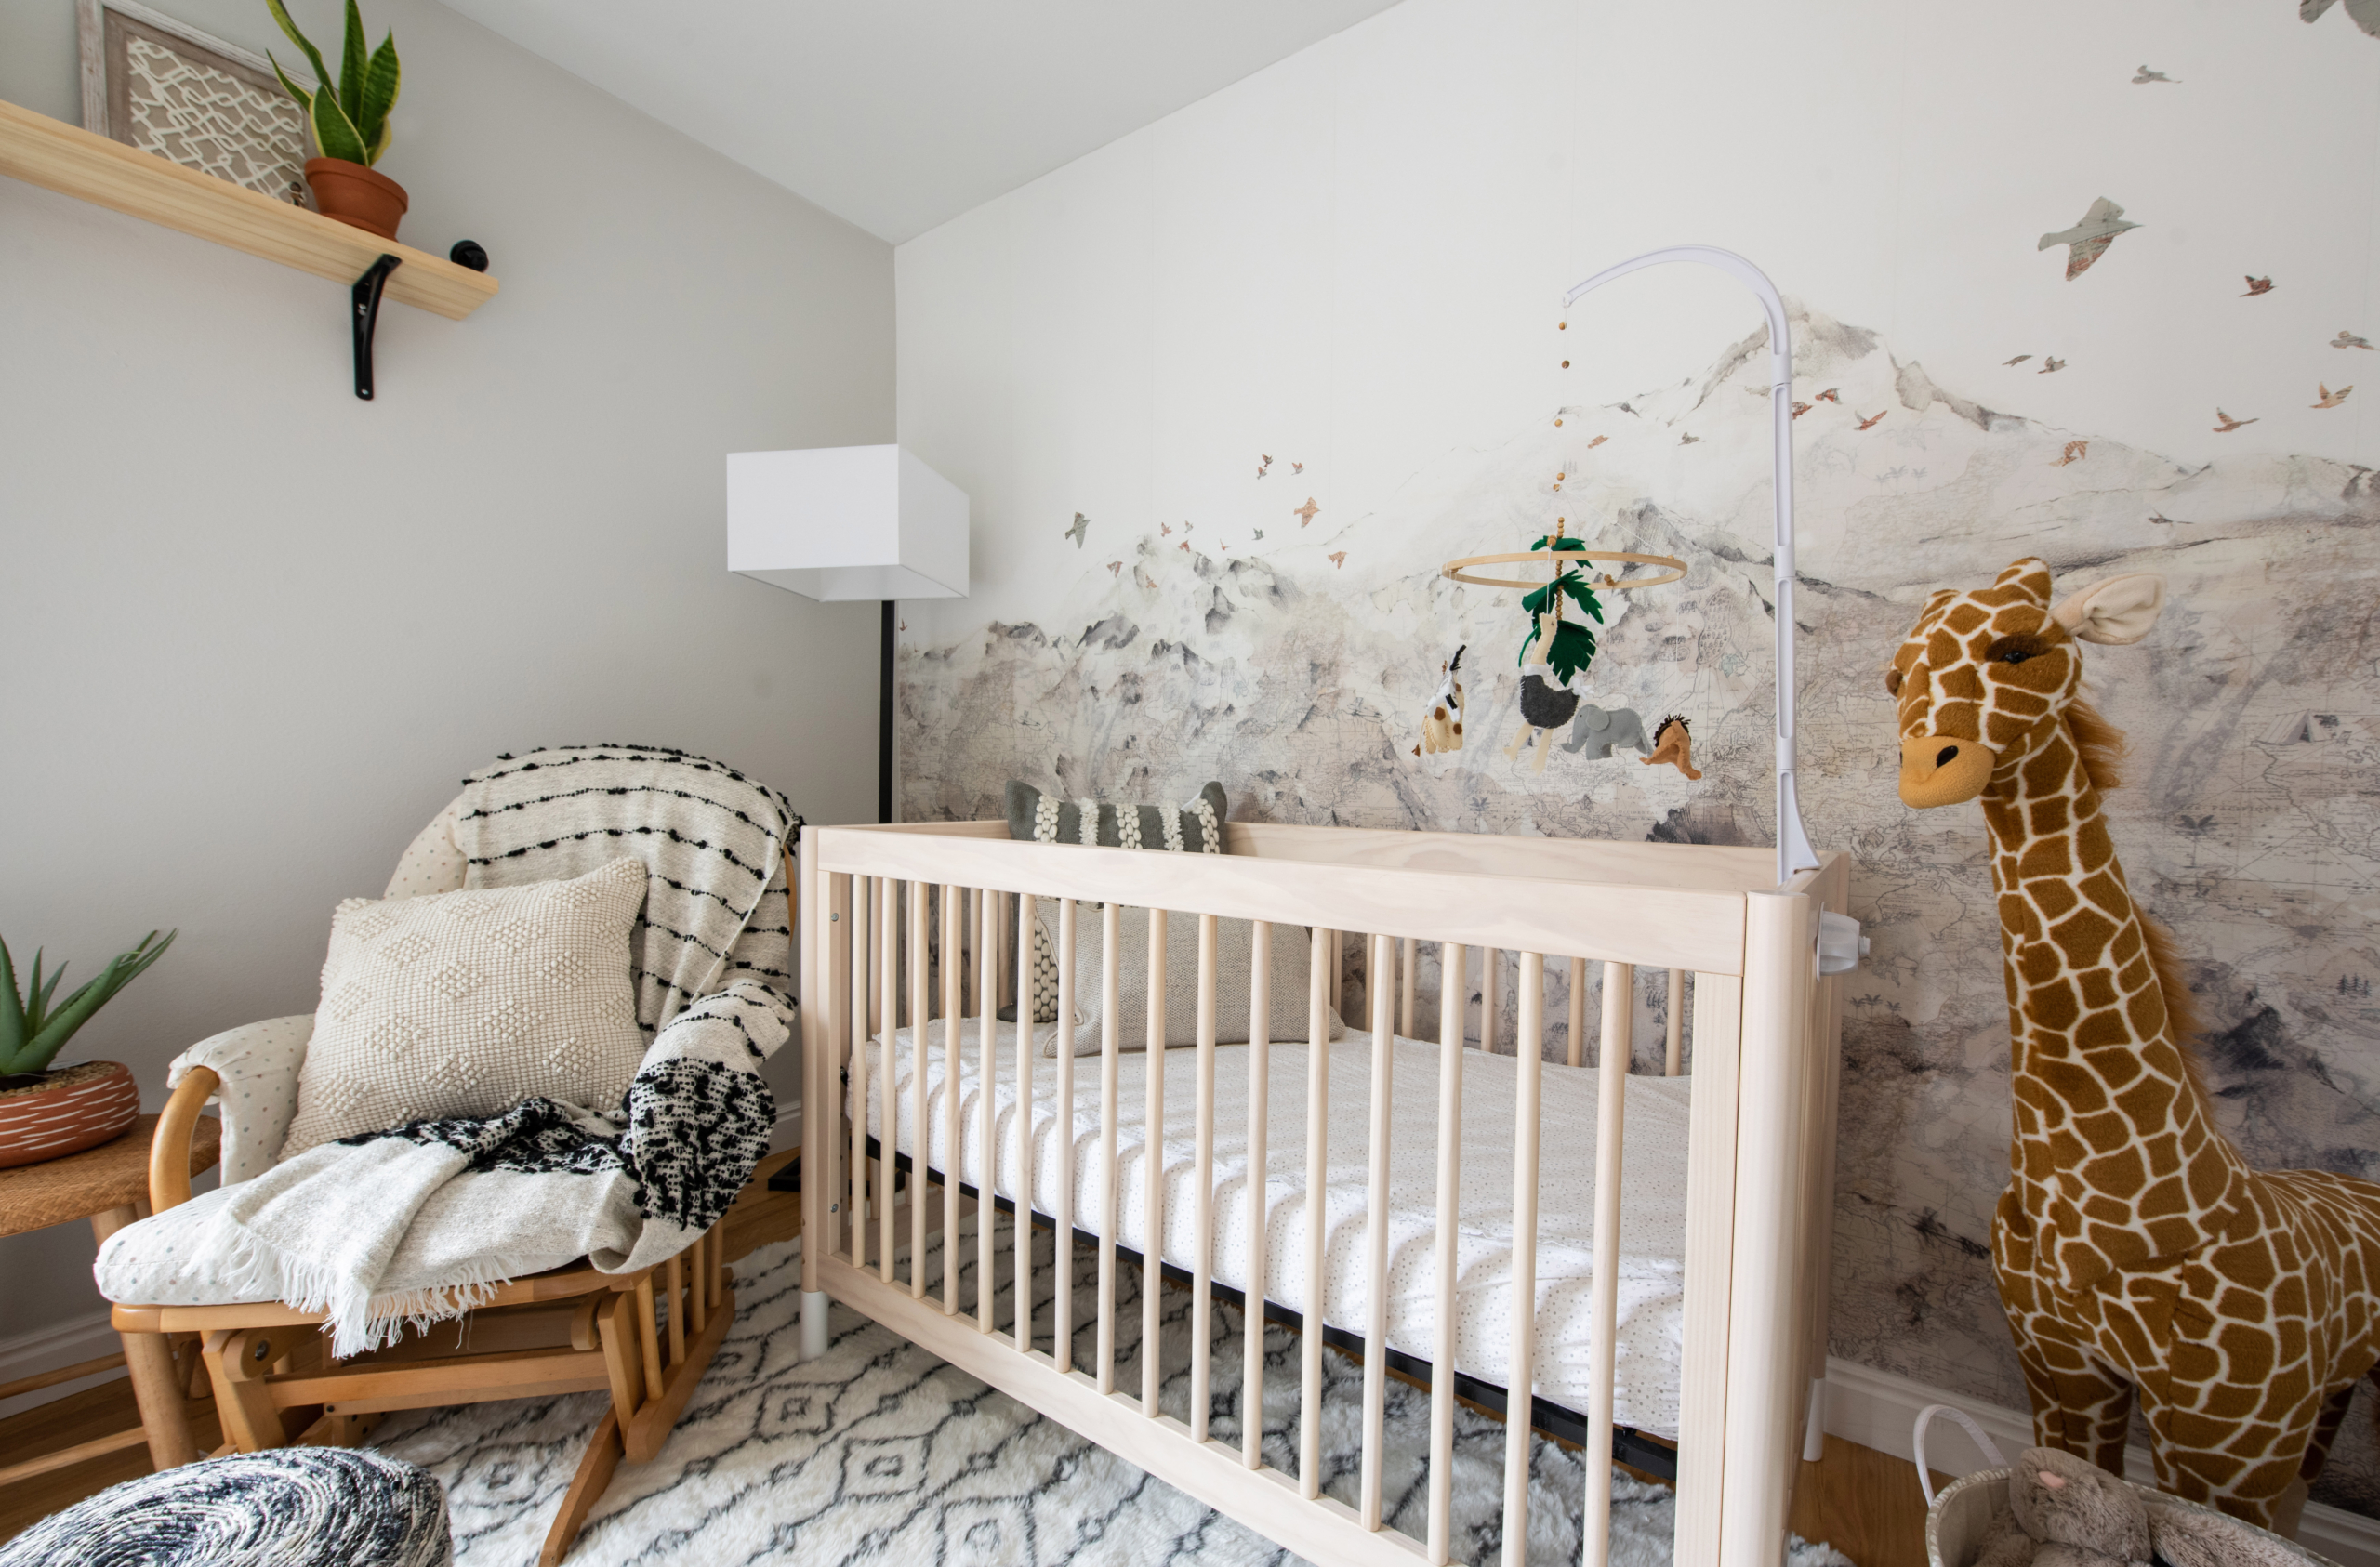 Safari nursery in Louisville CO with global accents and mountain wallpaper with birds